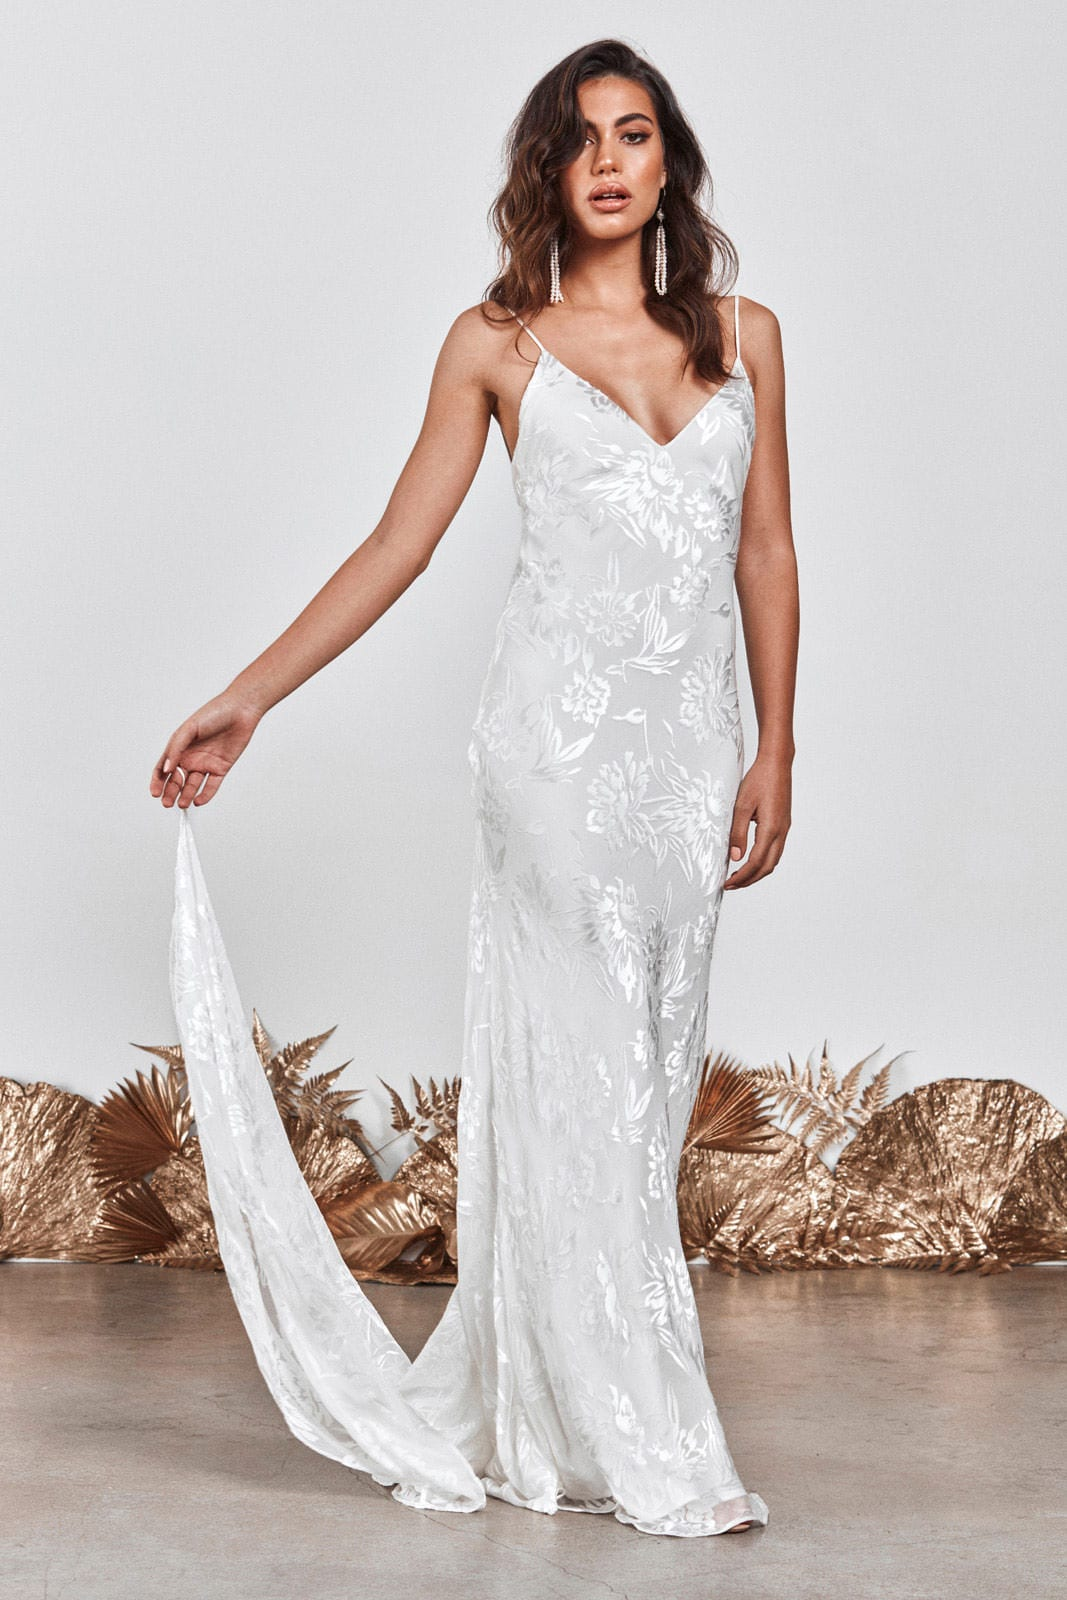 19 Grace Loves Lace Wedding Dresses For 2021 Kiss The Bride Magazine,Stunning Wedding Guest Dresses Uk